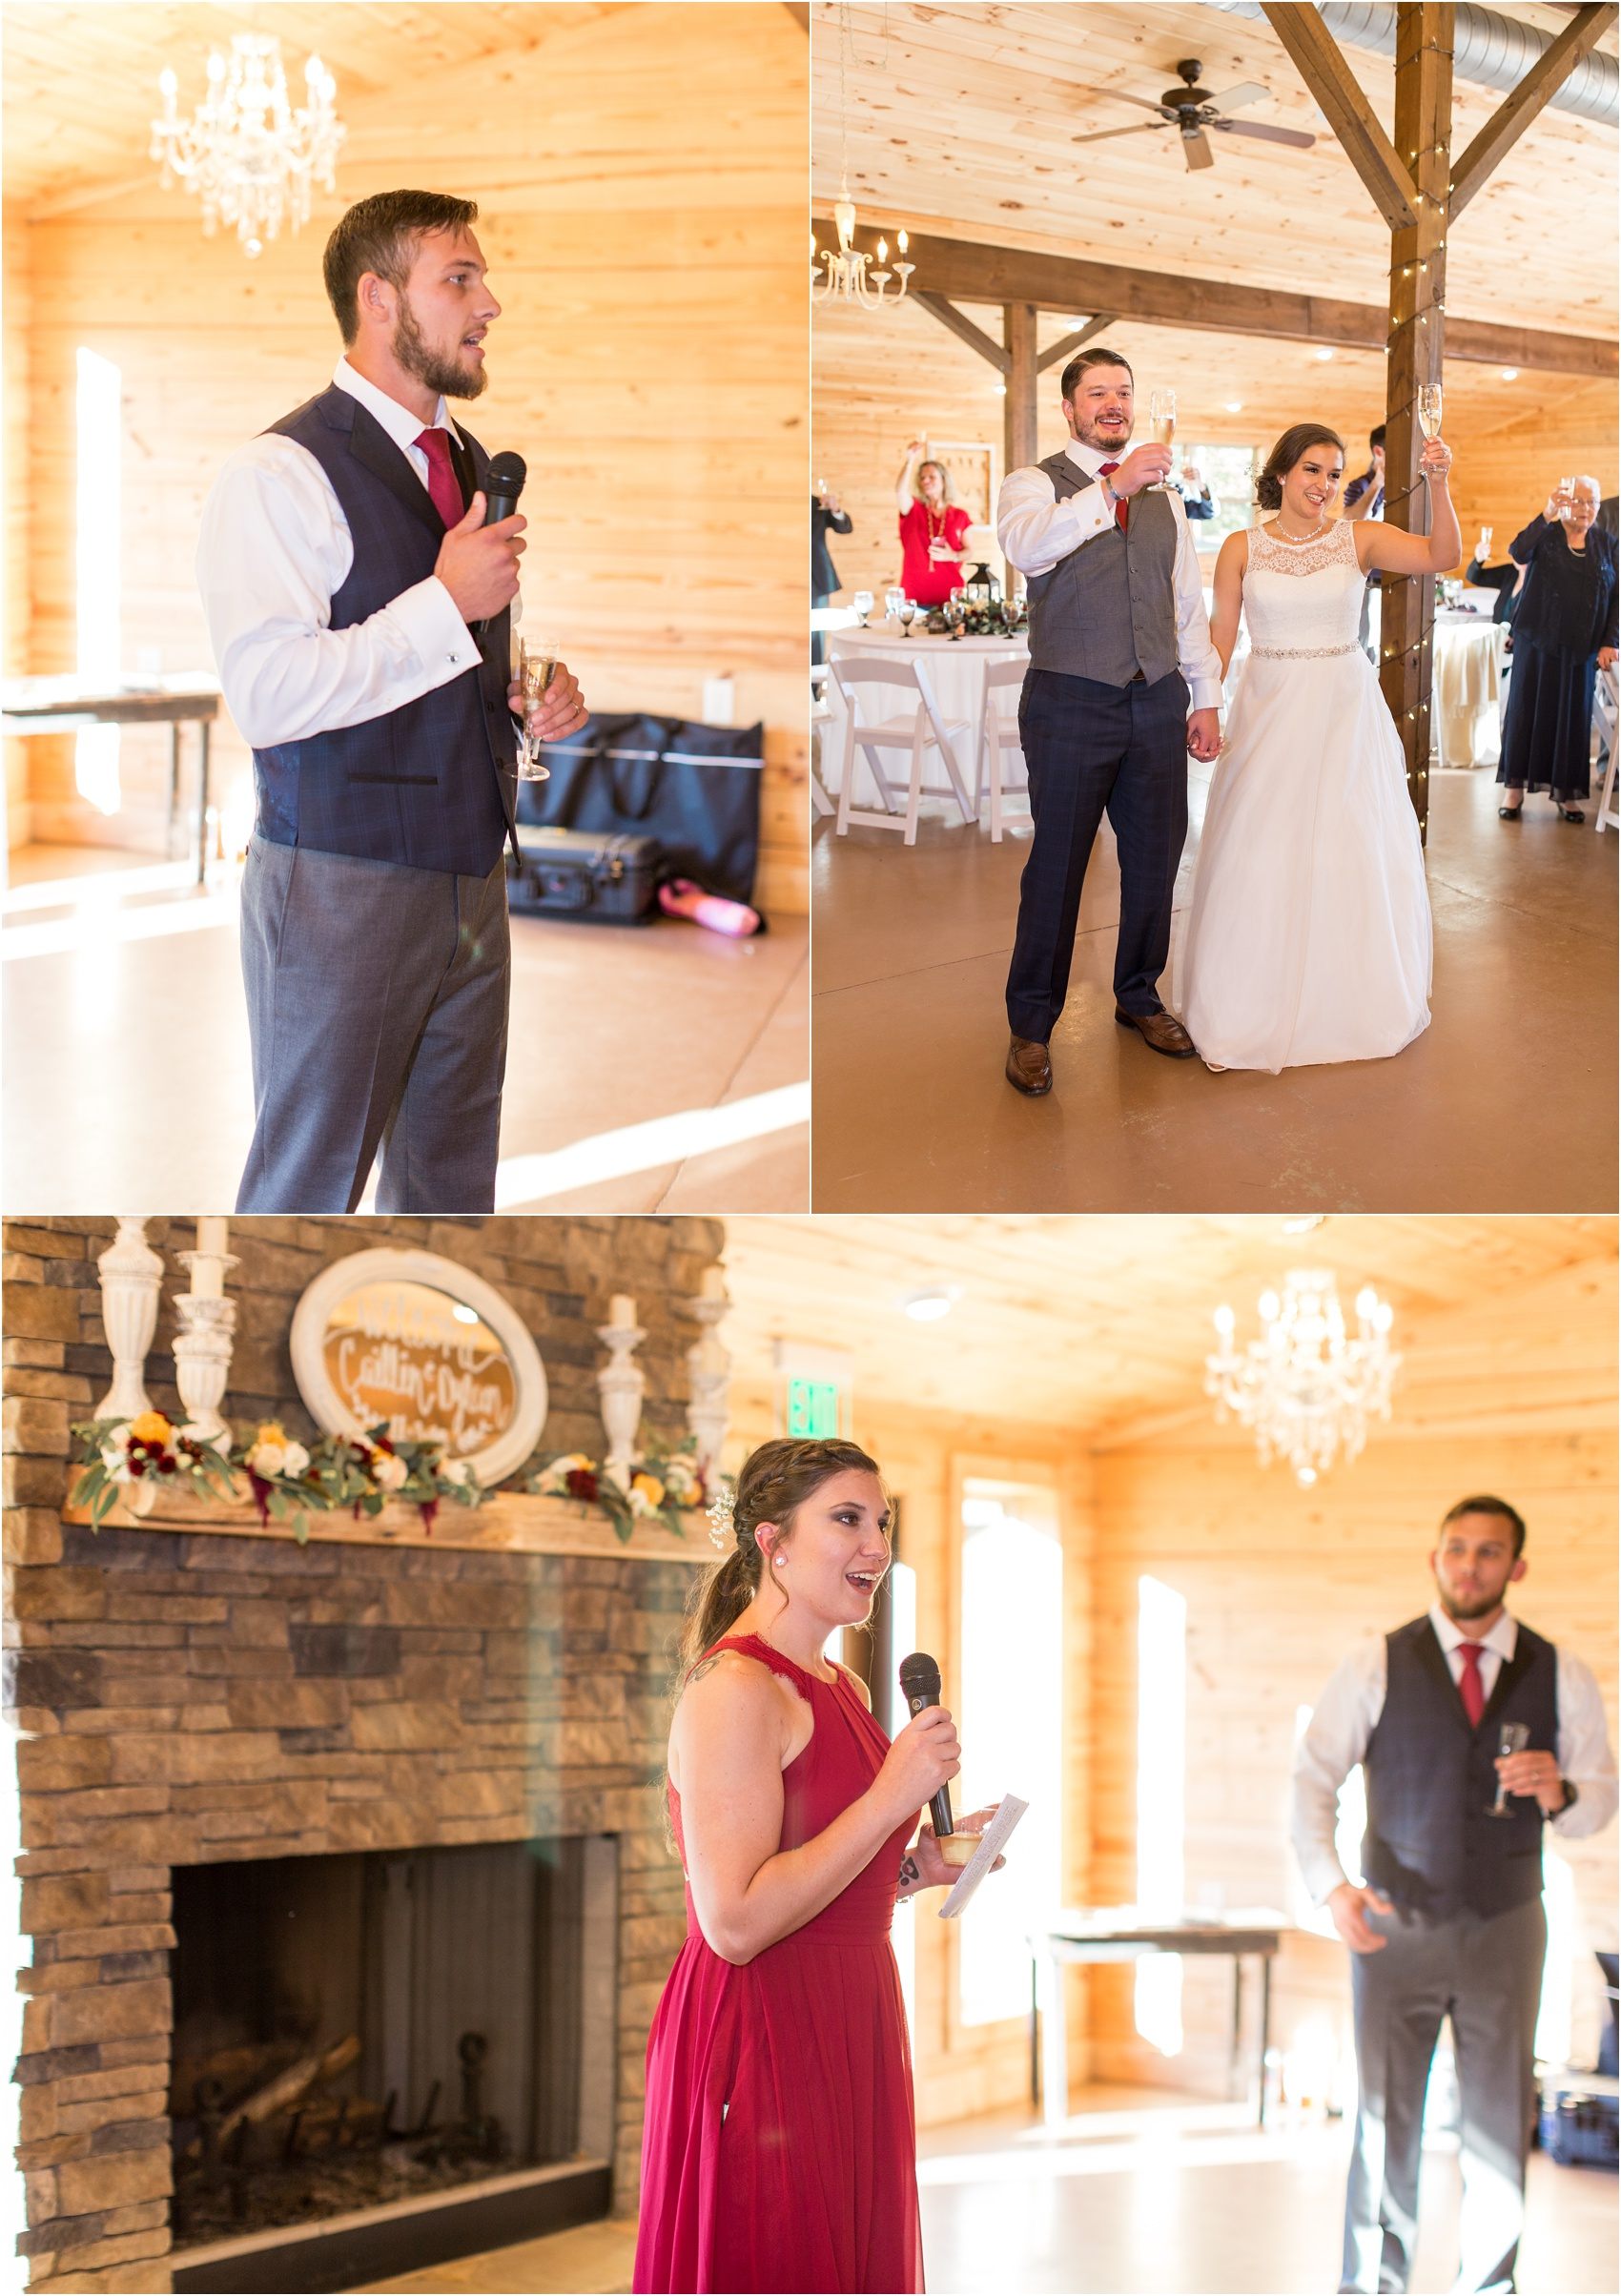 Savannah Eve Photography- McGeary-Epp Wedding- Sneak Peek-93.jpg